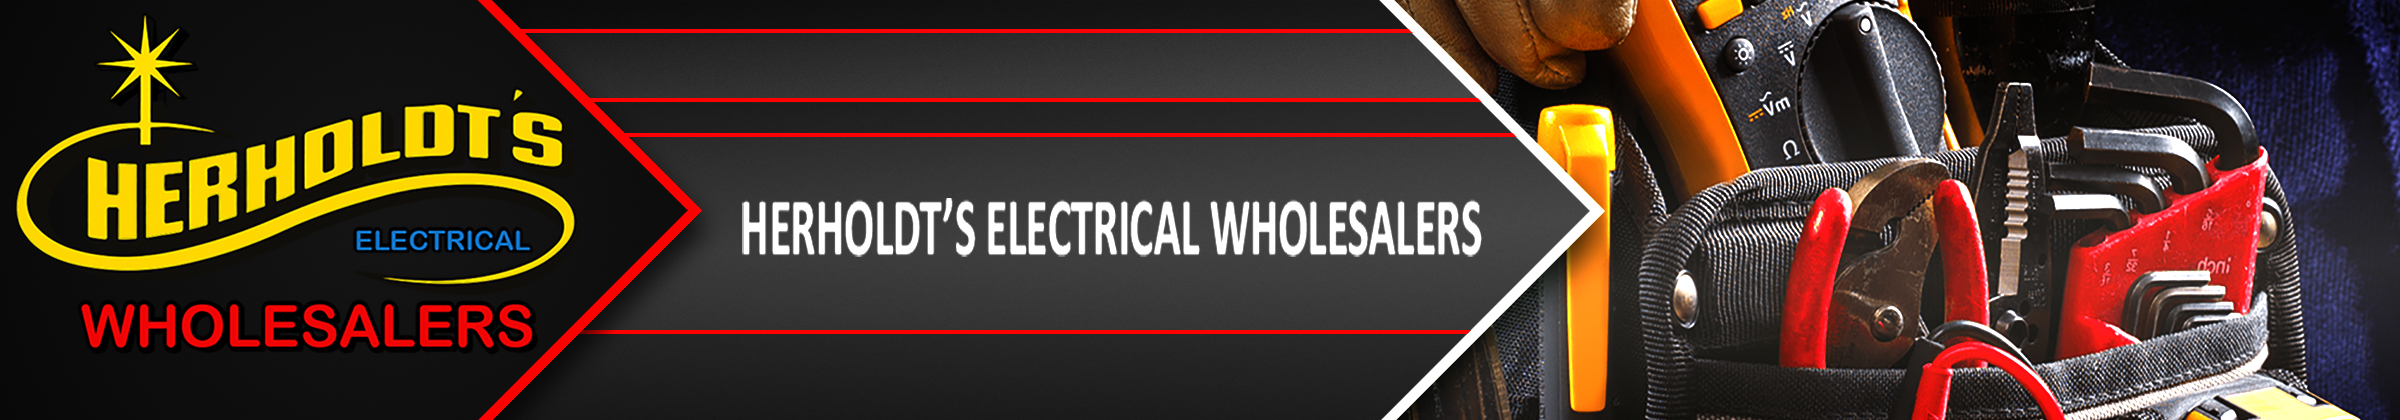 Herholdt's Electrical Wholesalers